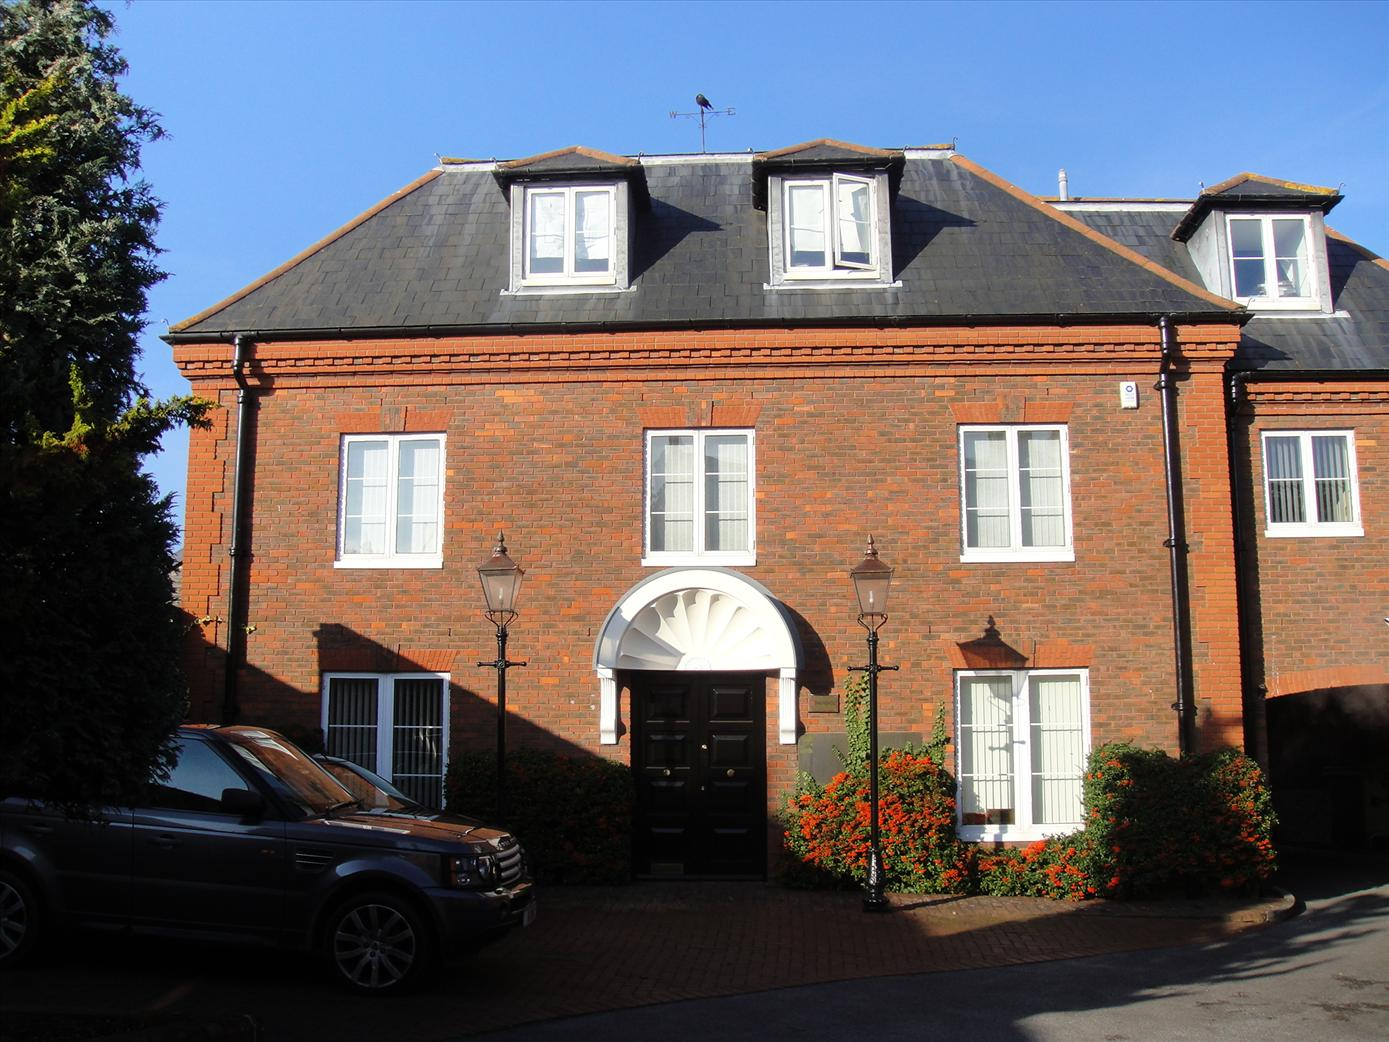 Scammell House , High Street, Ascot, Berkshire